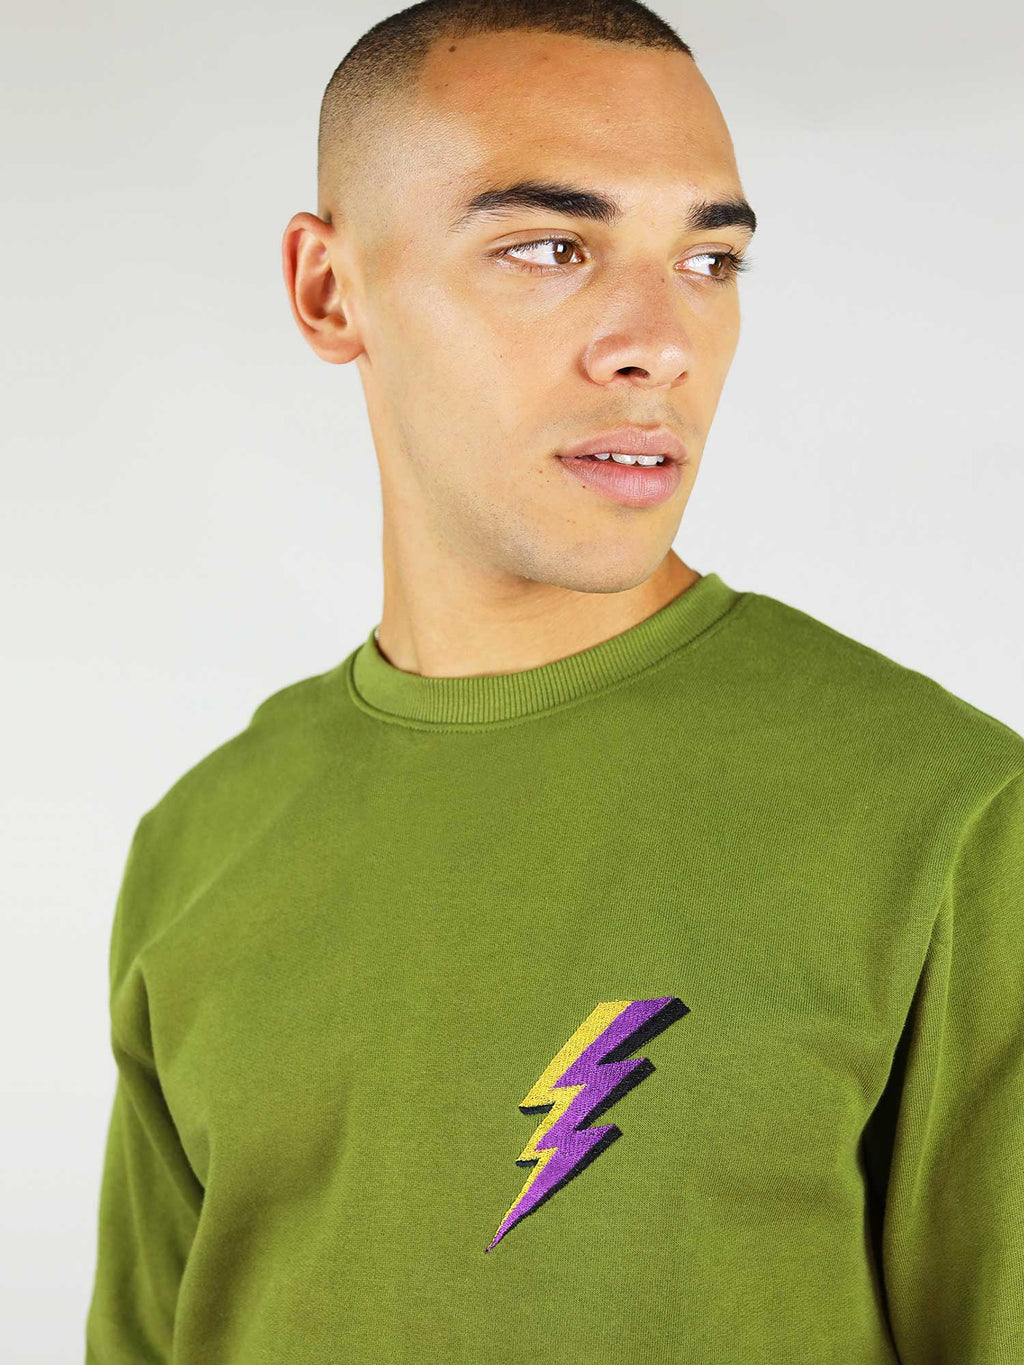 The thunder organic sweatshirt in green has a thunder embroidery on the chest in purple and yellow and crew neck. Slightly oversized fit for extra comfort.